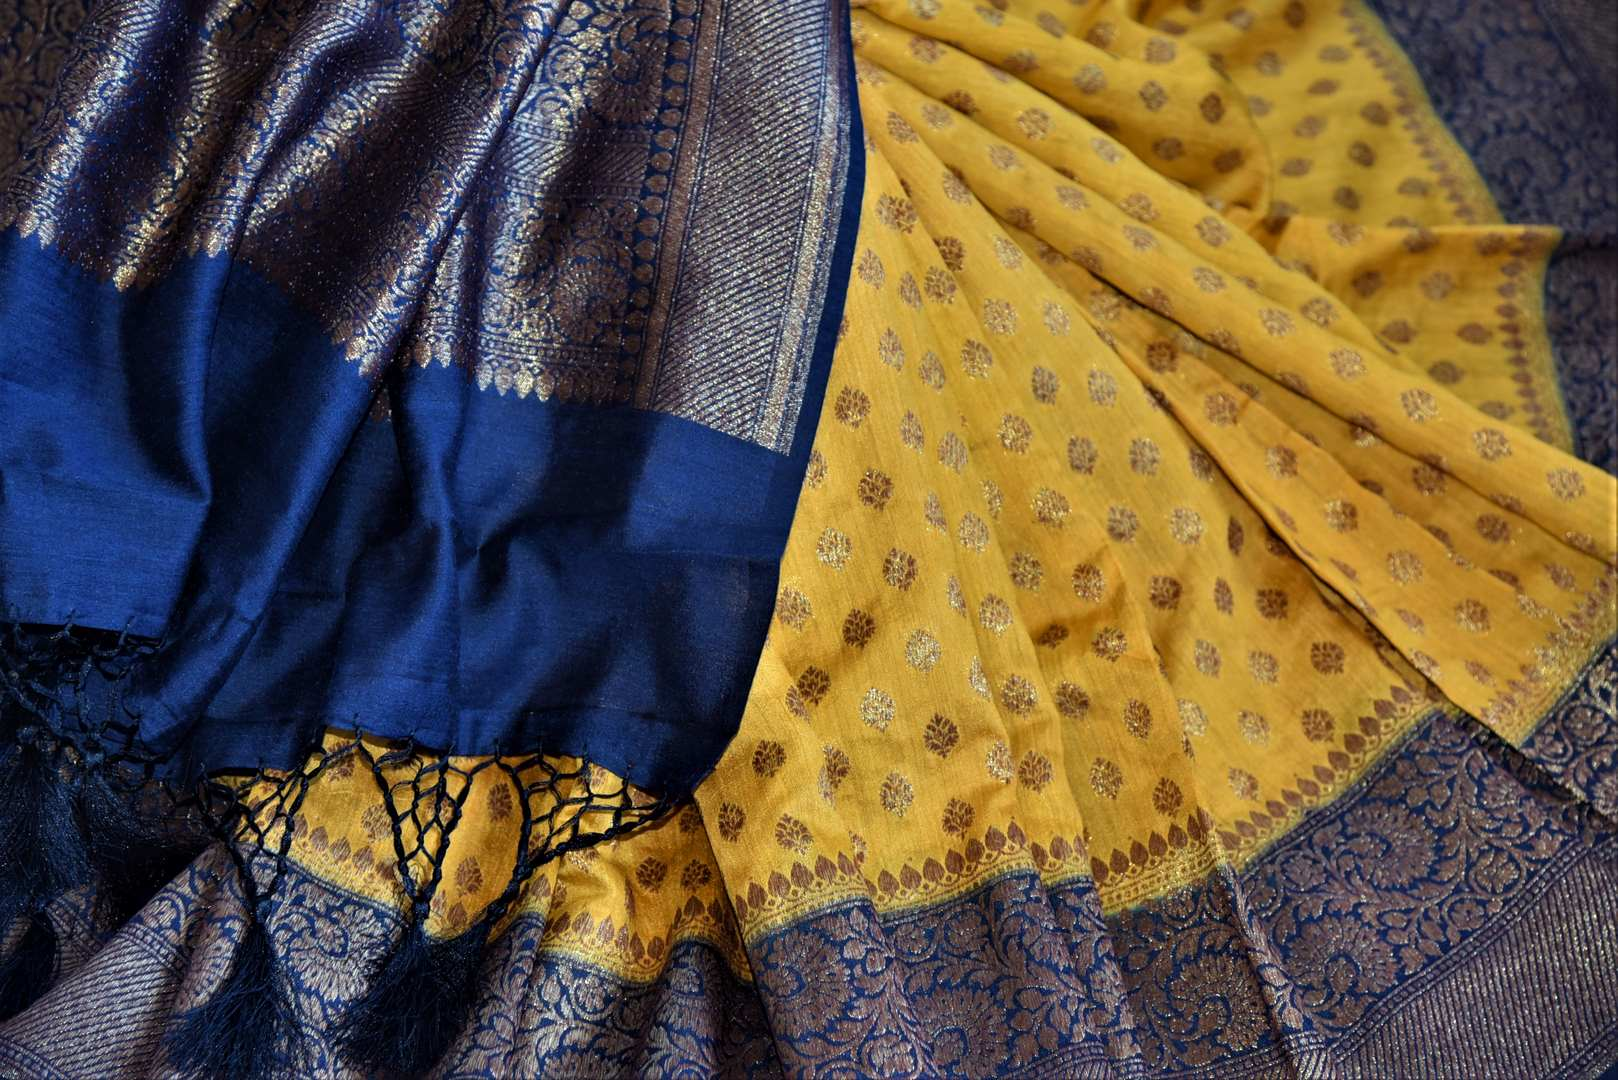 Buy stunning yellow muga Banarasi saree online in USA with blue antique zari border. Be an epitome of ethnic Indian fashion with traditional Banarasi sarees, georgette saris from Pure Elegance fashion store in USA.-details